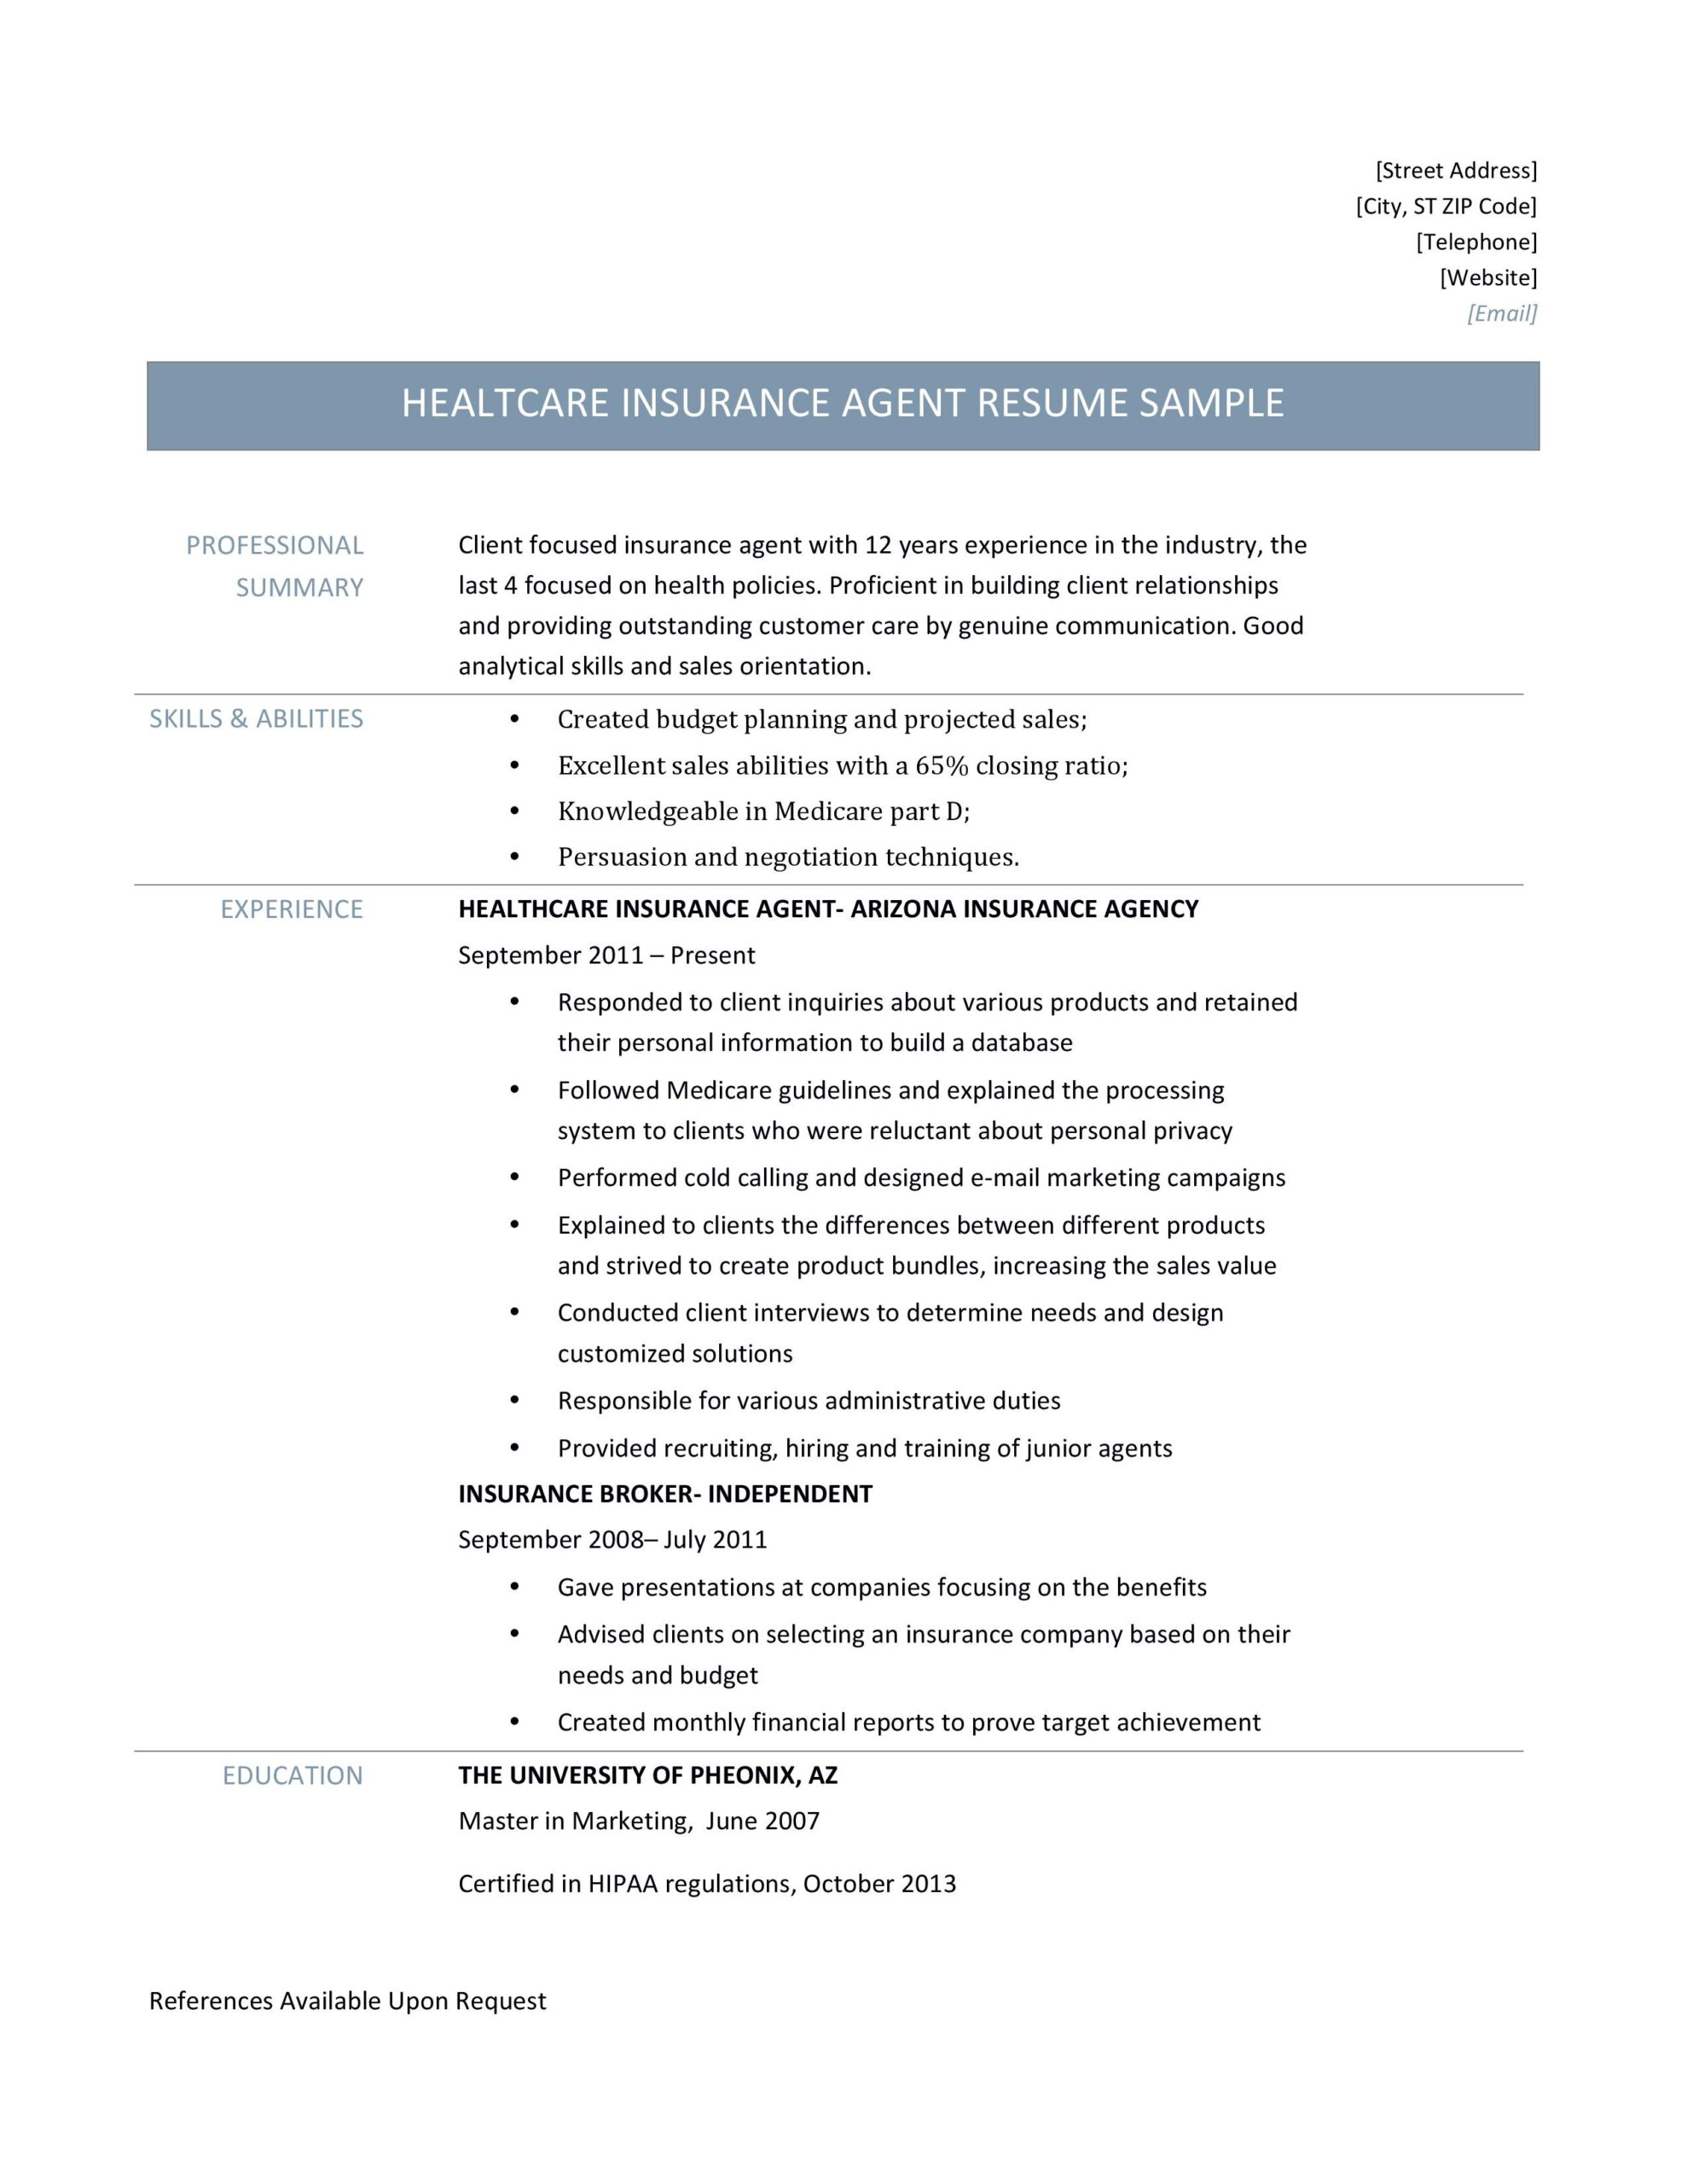 health insurance agent resume samples and job description by builders medium licensed Resume Licensed Health Insurance Agent Resume